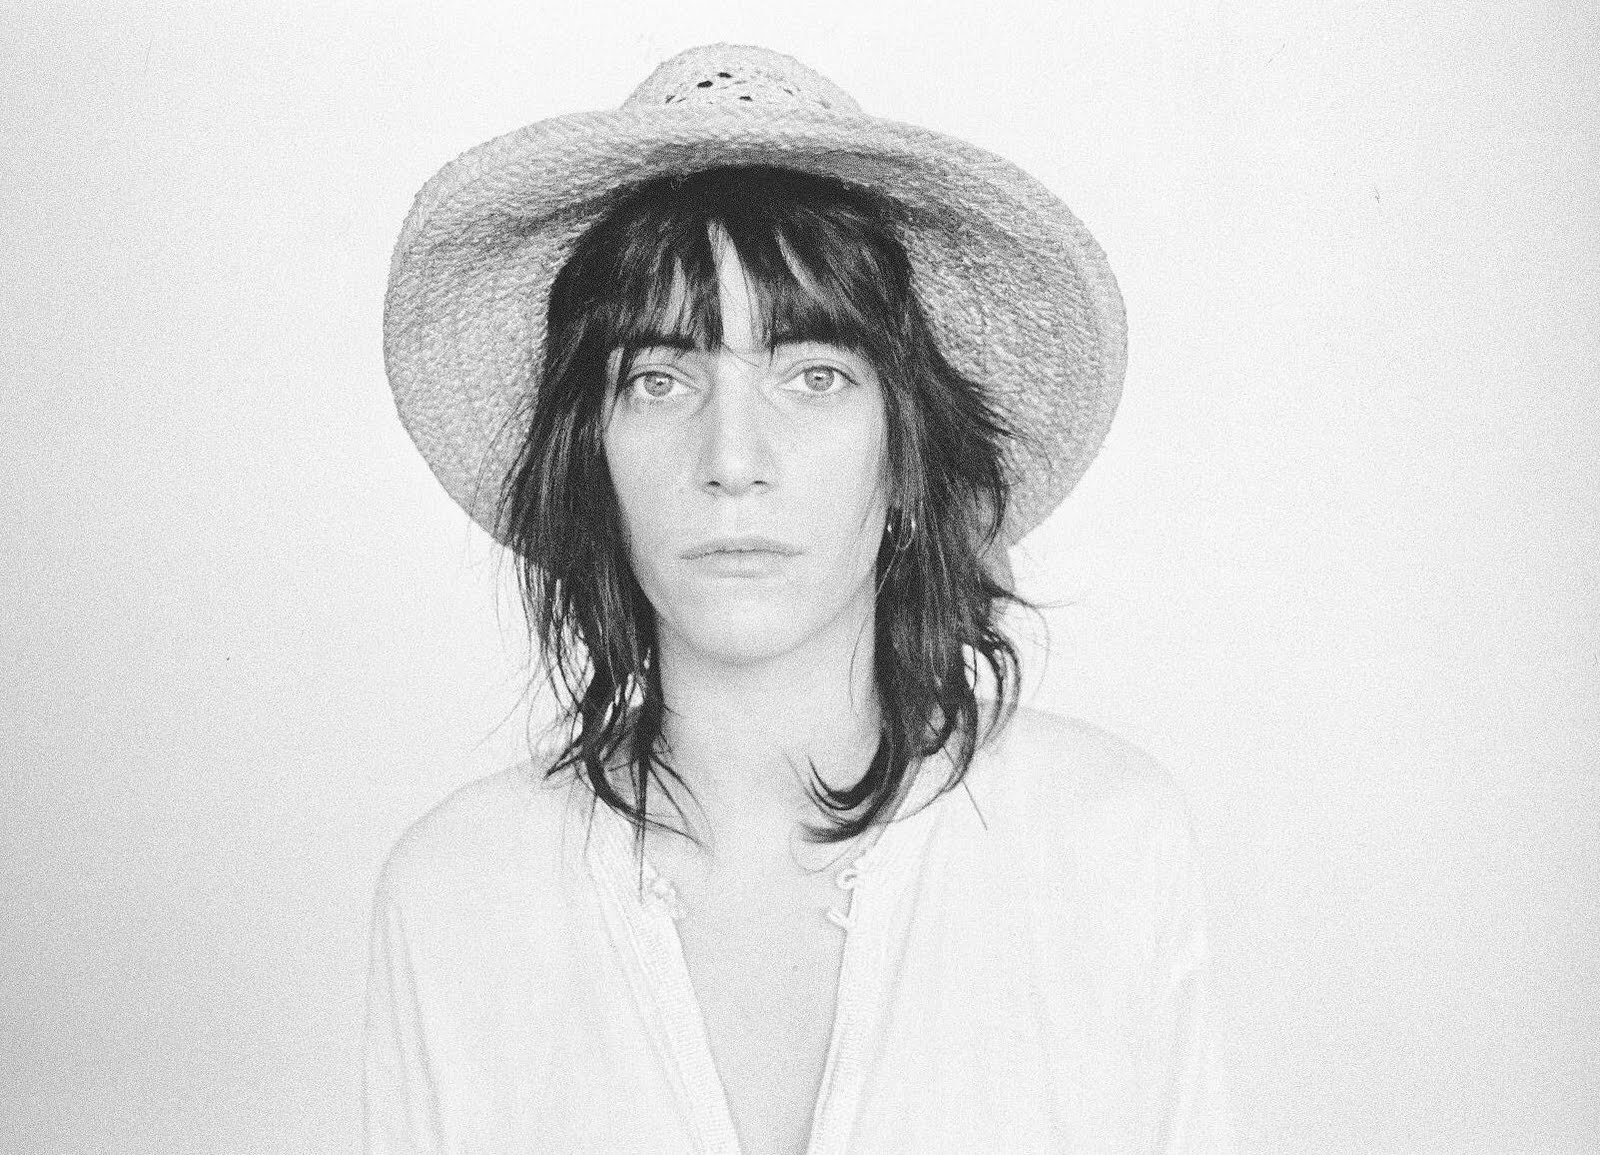 Infinito amor por ellaYoung Patti Smith